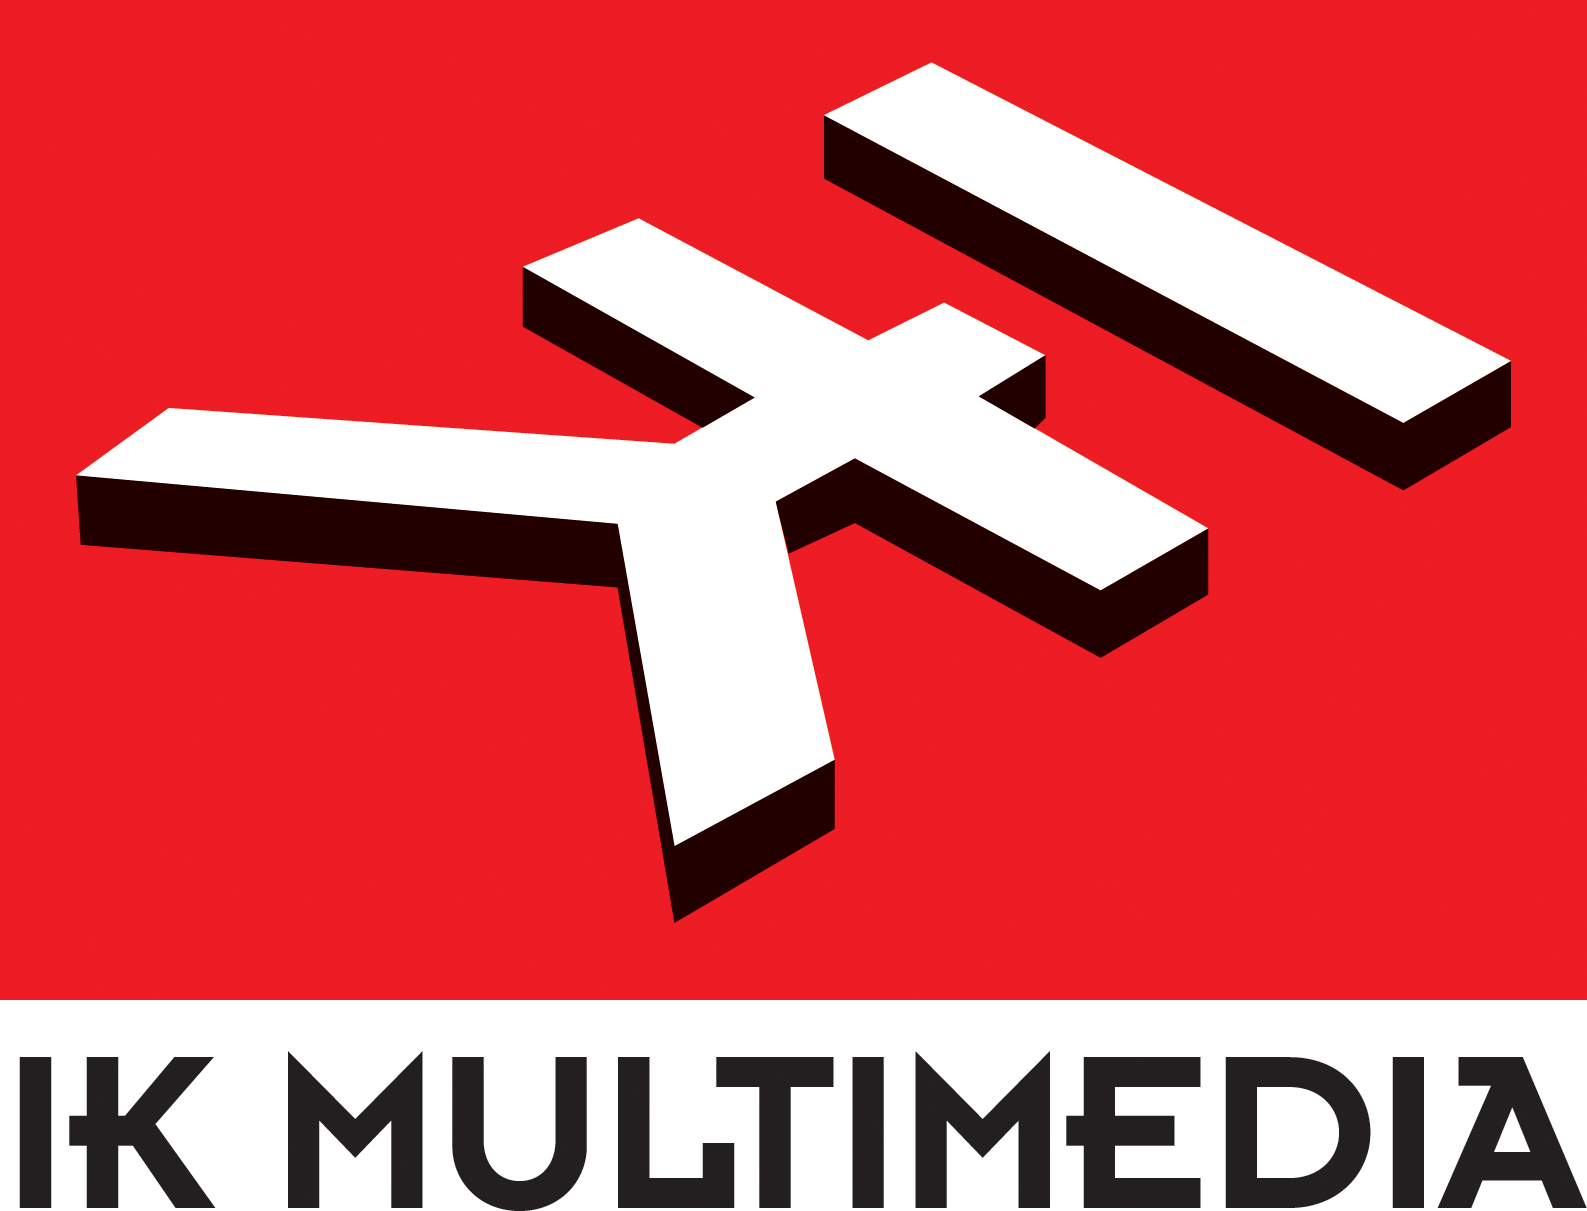 IK Multimedia sponsor of the usa songwriting competition